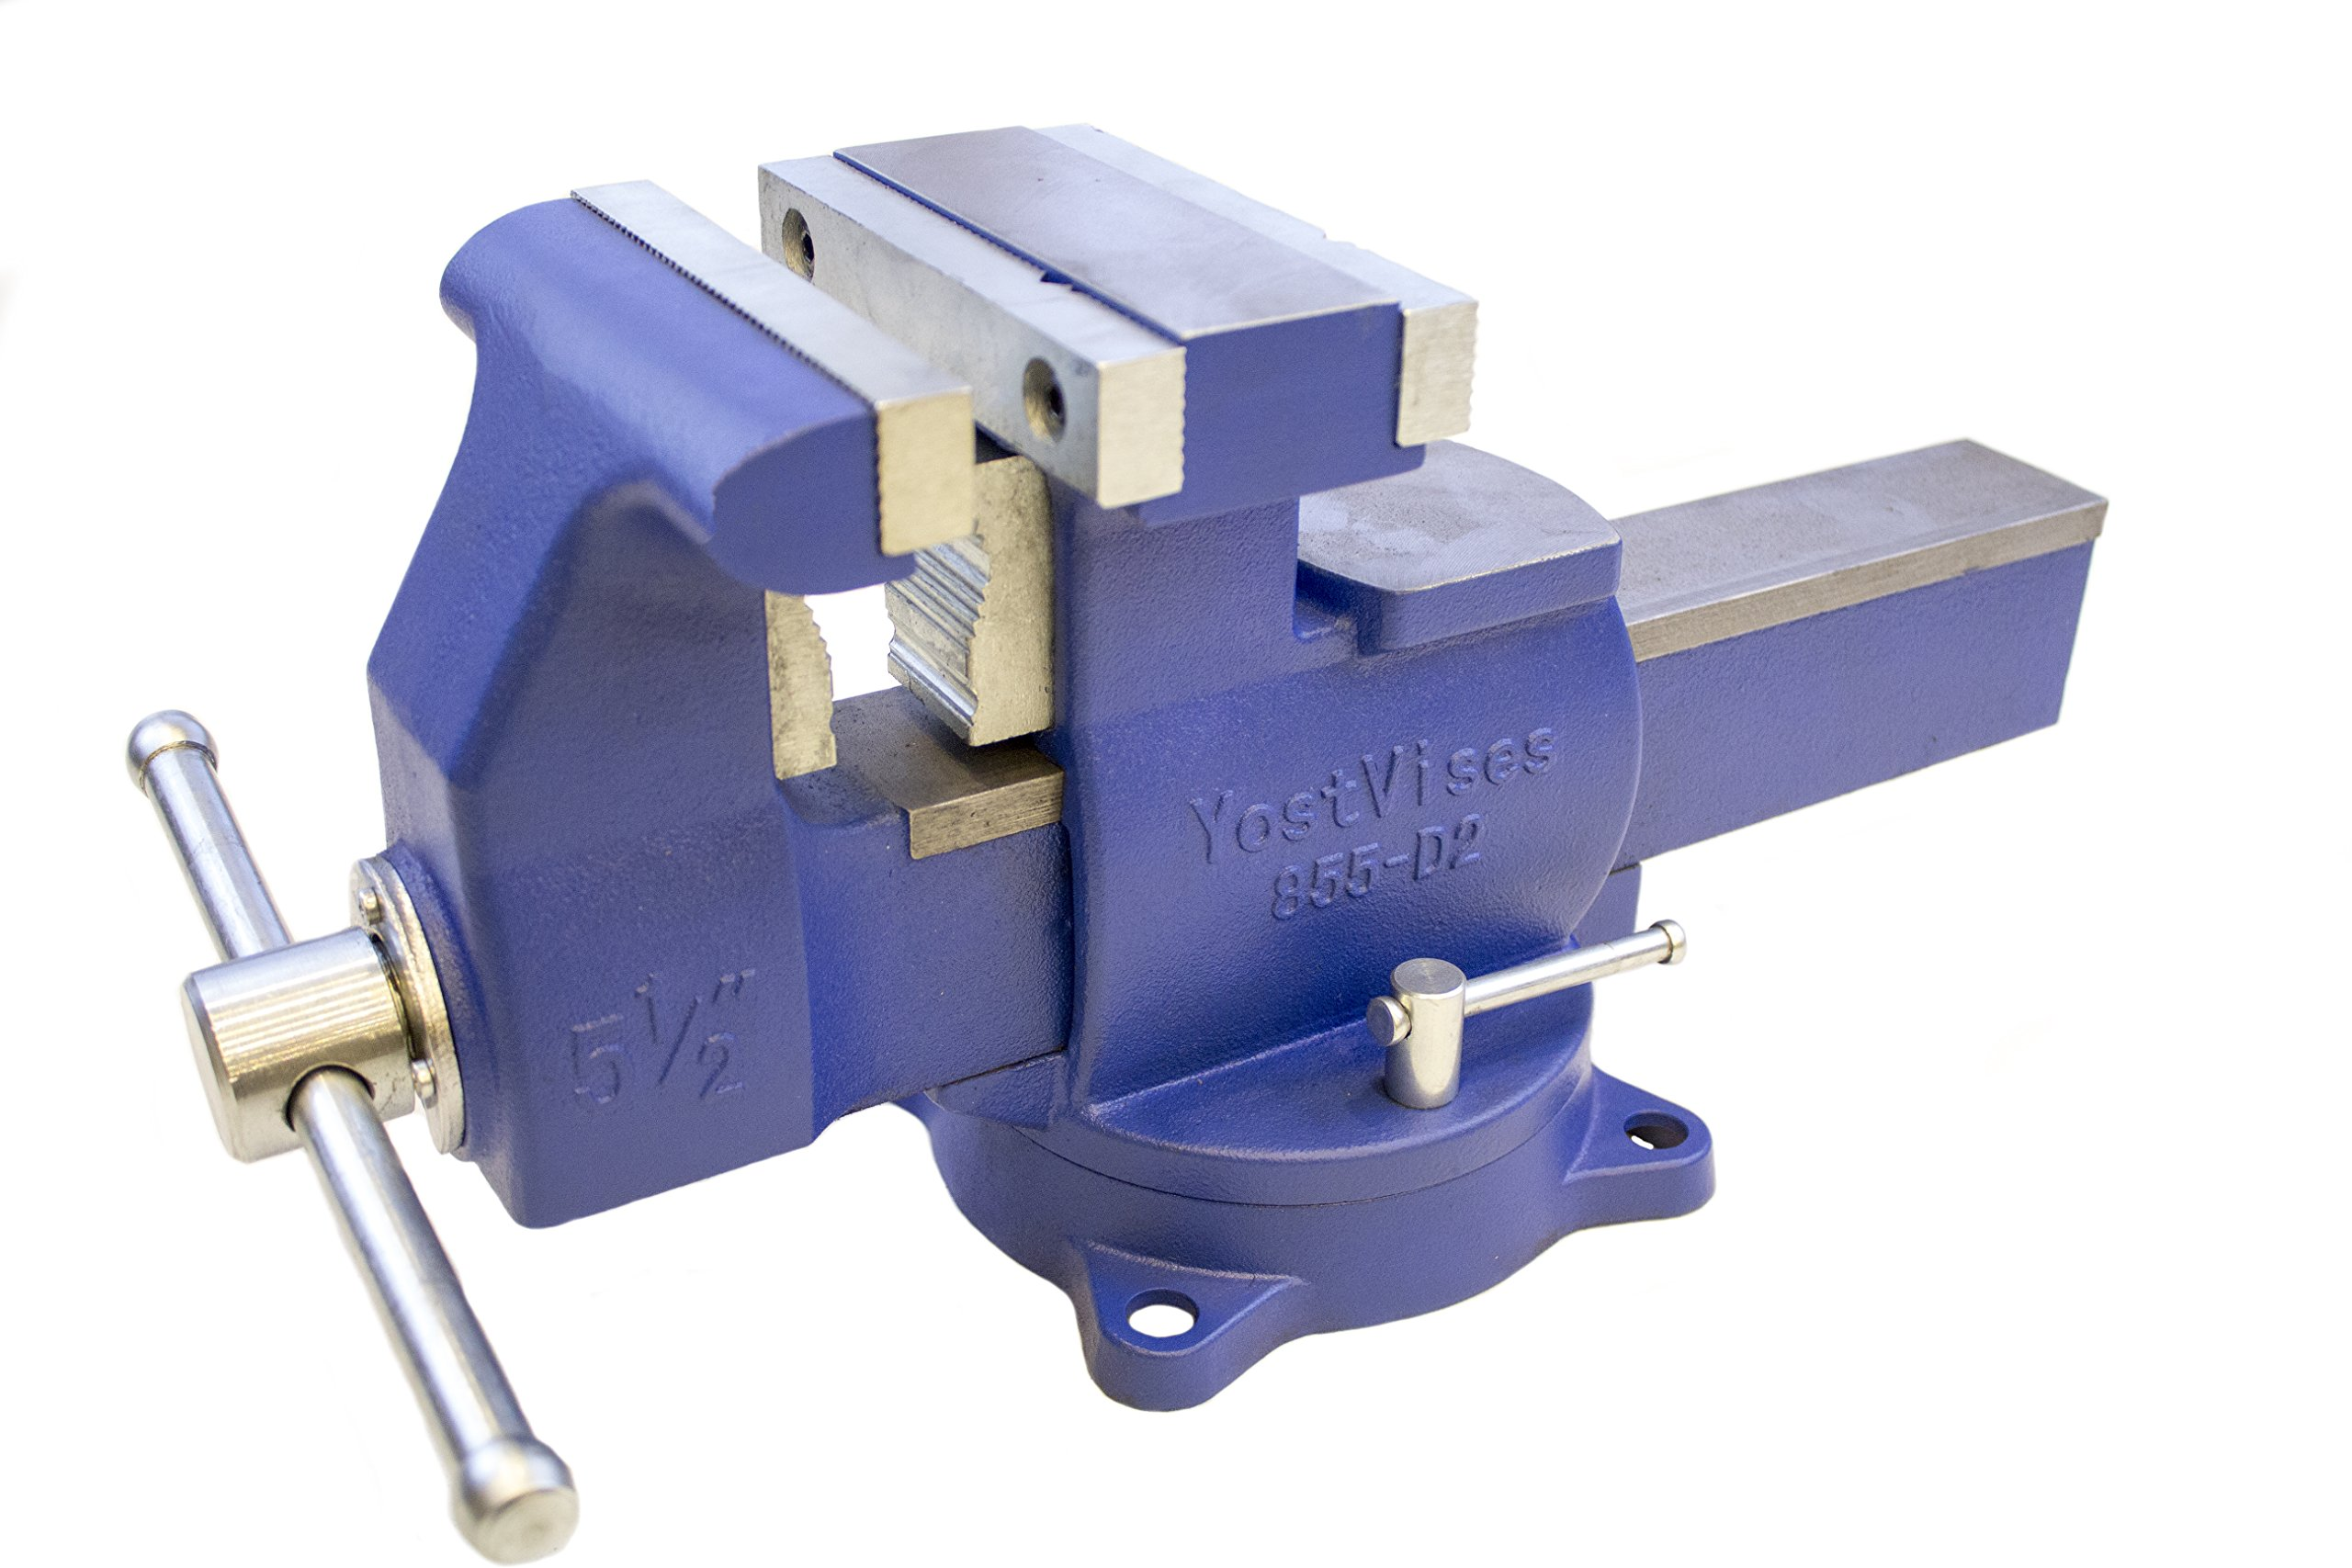 Yost Tools 865-D2 Industrial Grade 6.5'' Reversible Vise